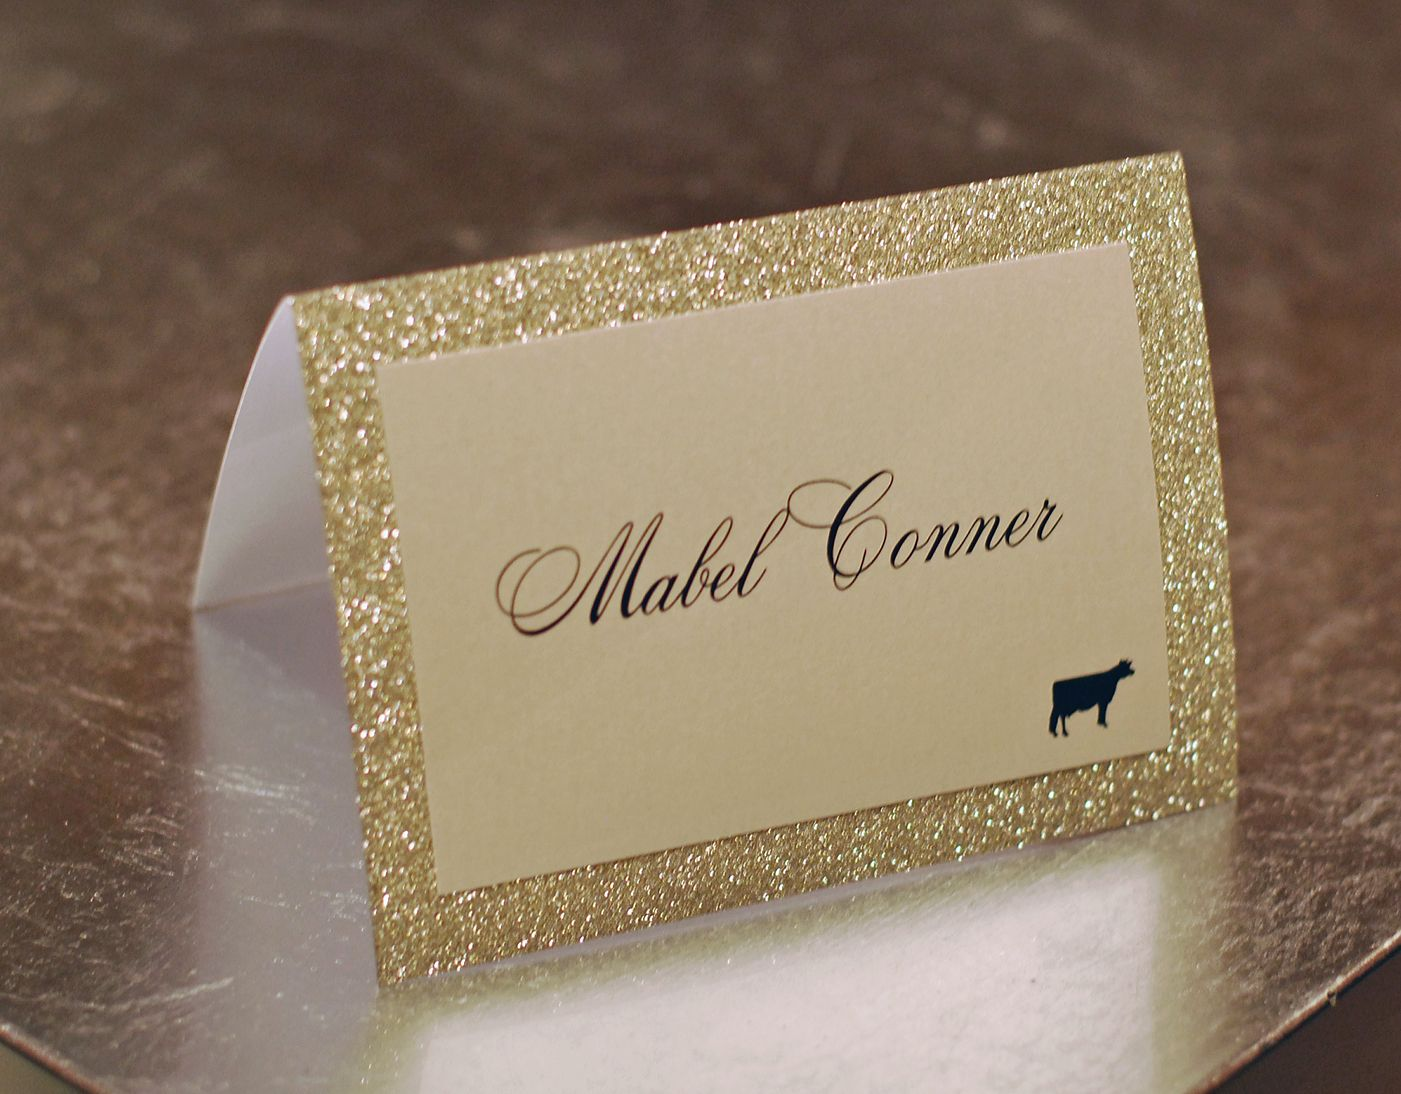 wedding place cards - Google Search | happily ever after ...